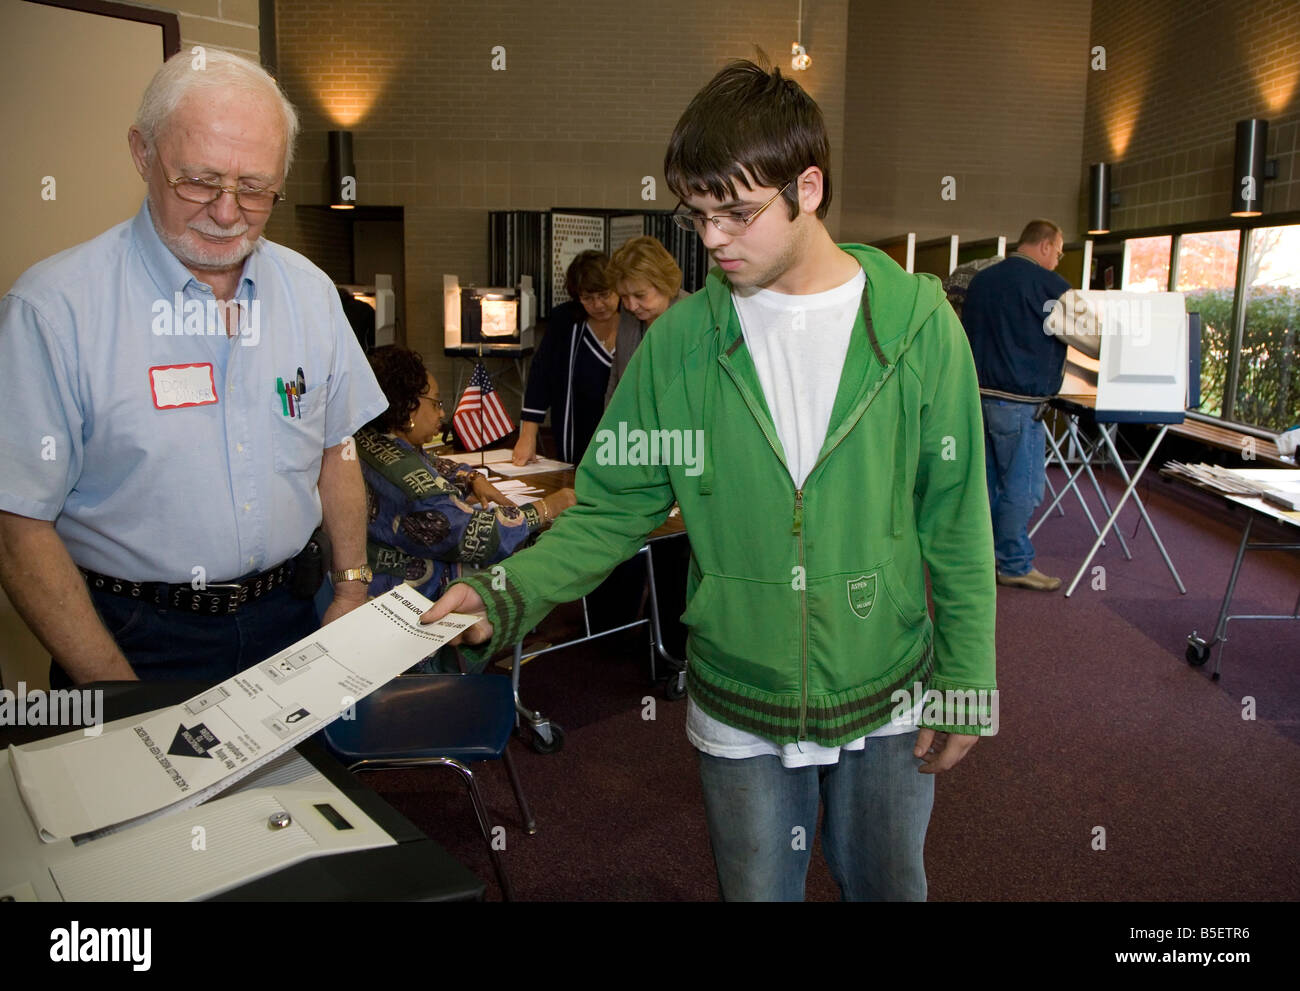 First-time voter casts ballot in 2008 Presidential election - Stock Image